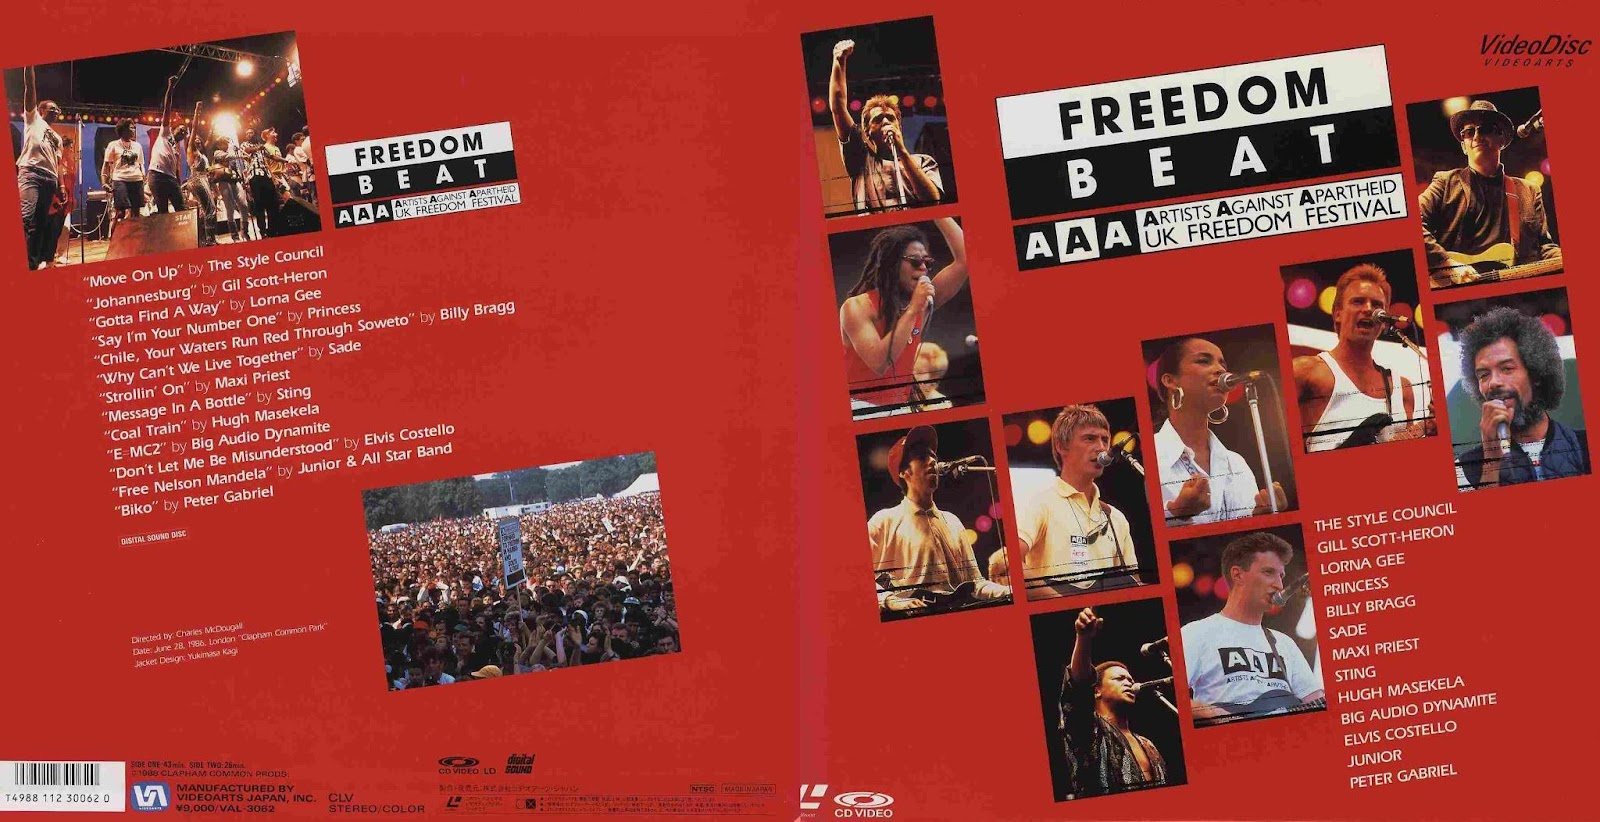 DVD cover of Freedom Beat.